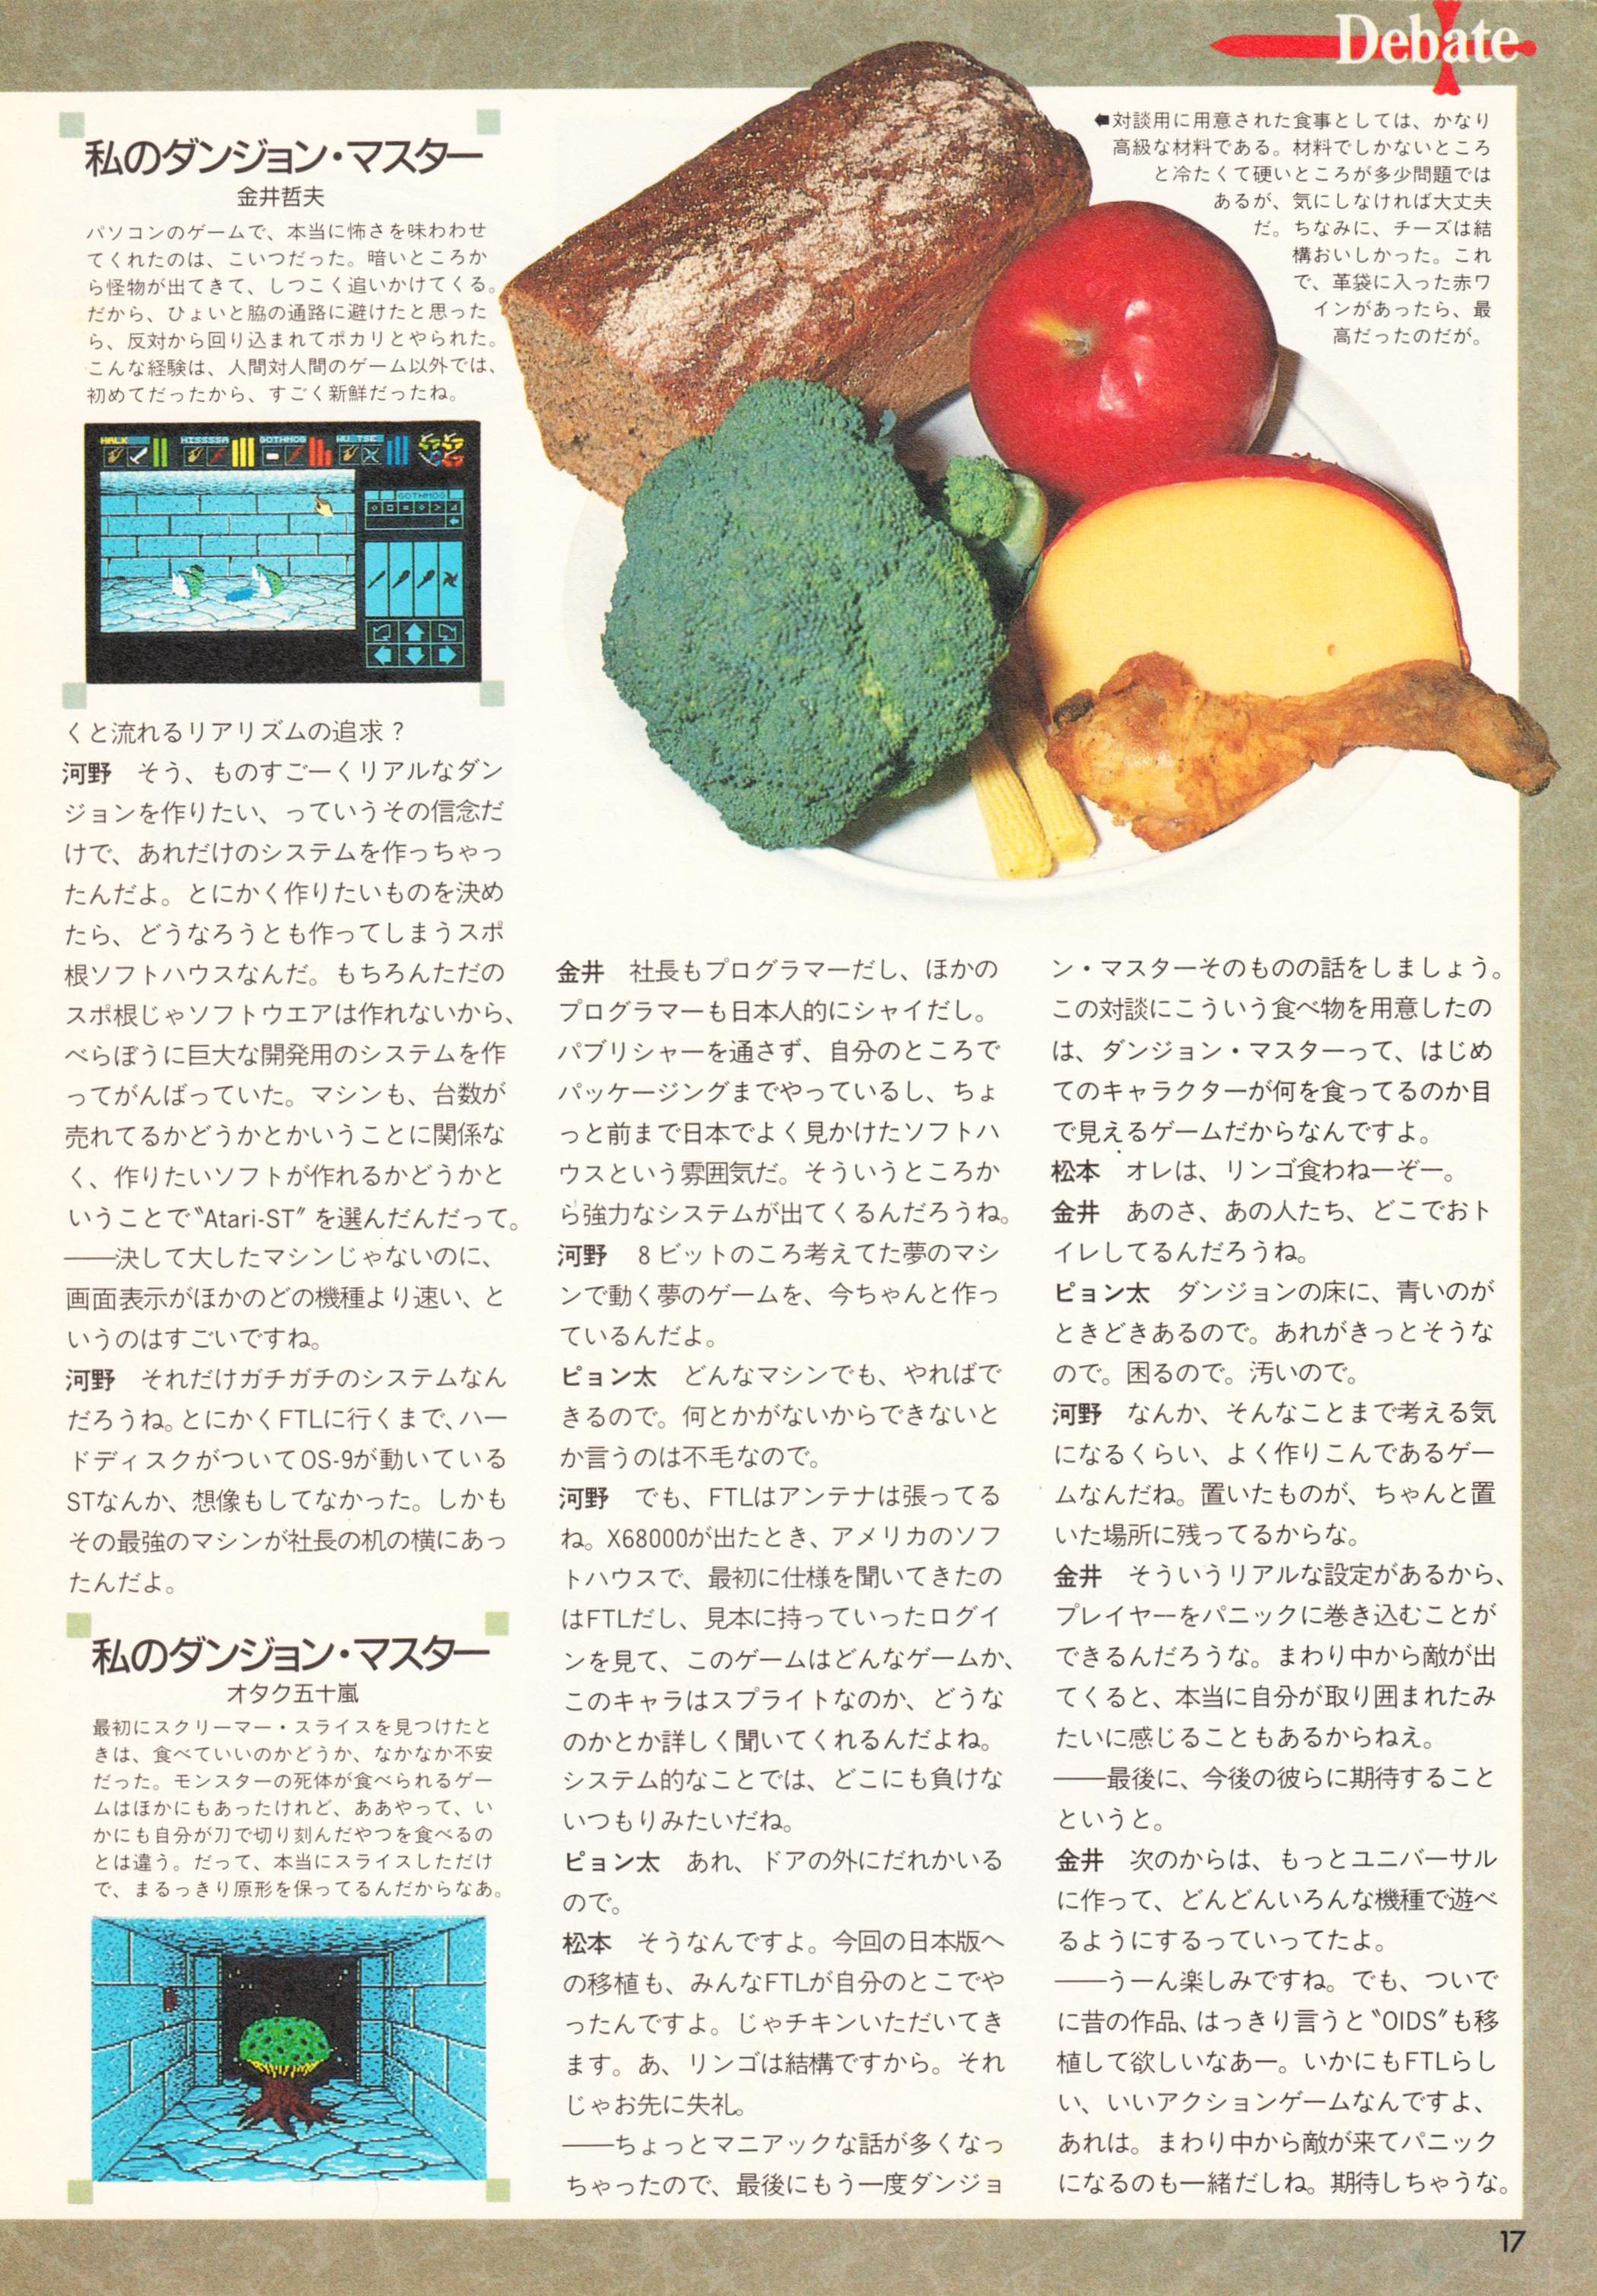 Special Supplement 2 - Dungeon Master Guide published in Japanese magazine 'Login', Vol 9 No 3 02 February 1990, Page 17